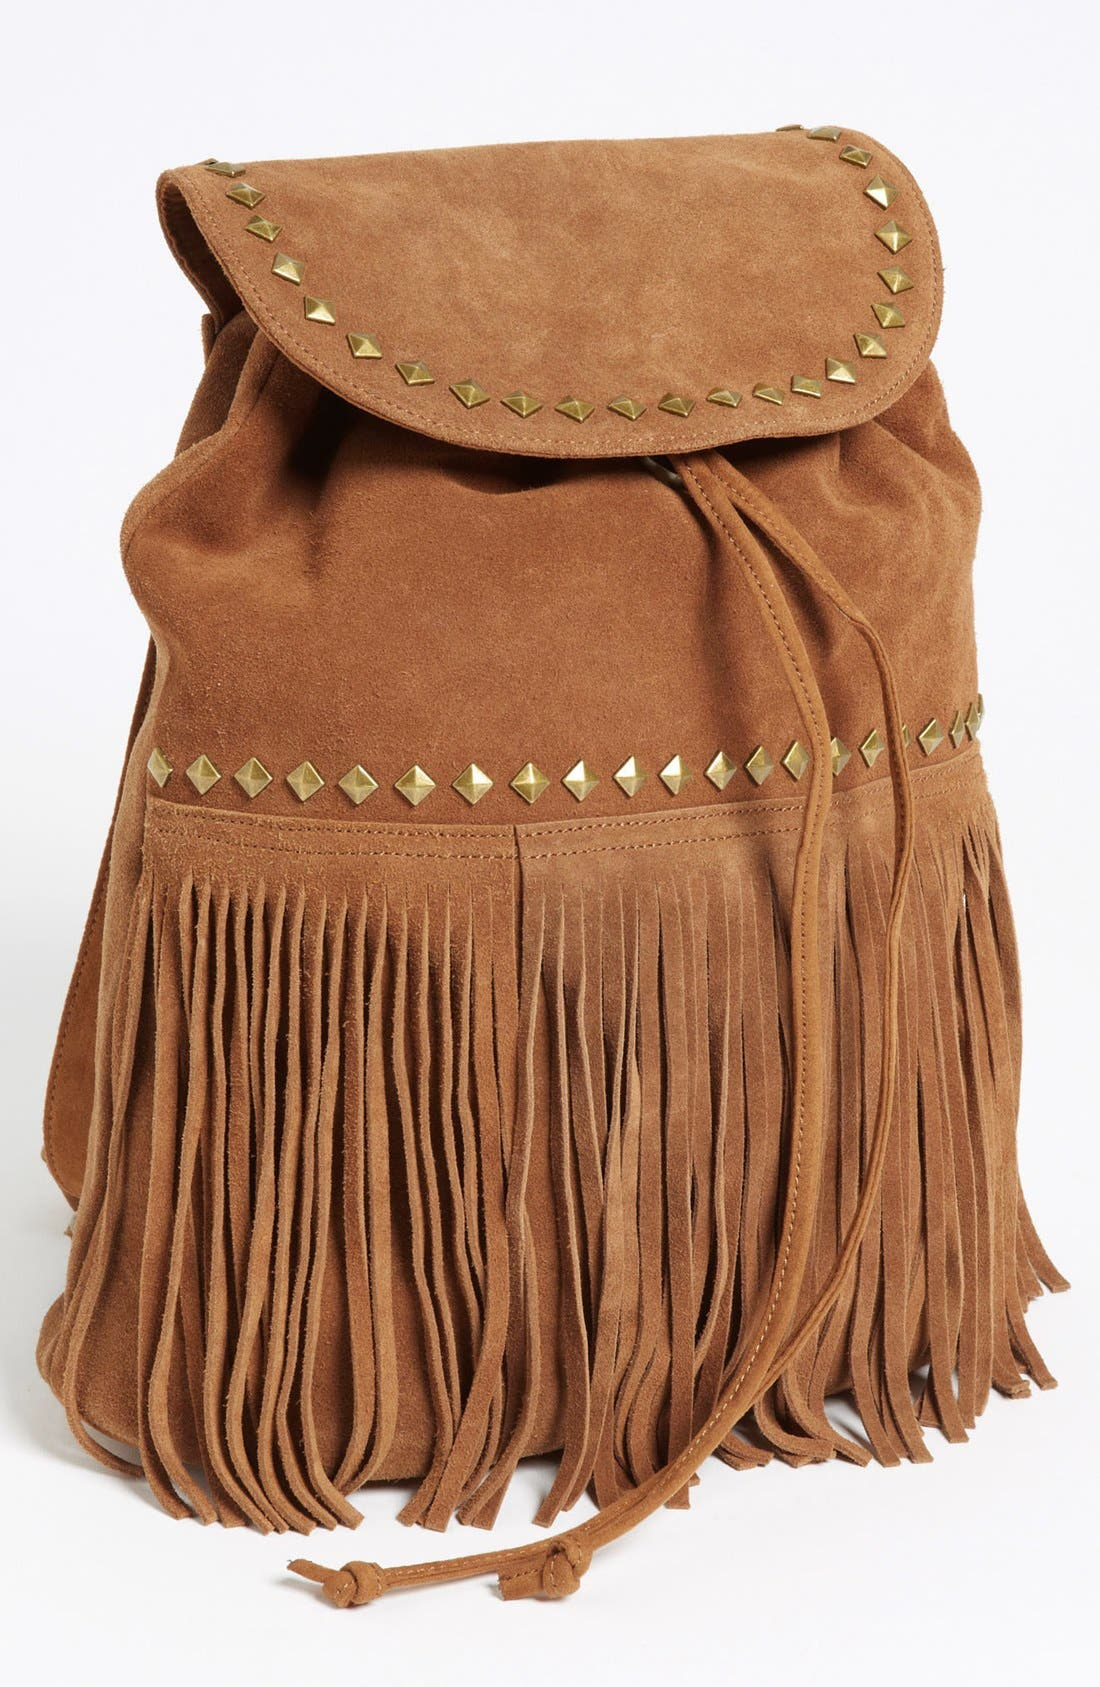 Alternate Image 1 Selected - Steve Madden Fringed Suede Backpack (Juniors)